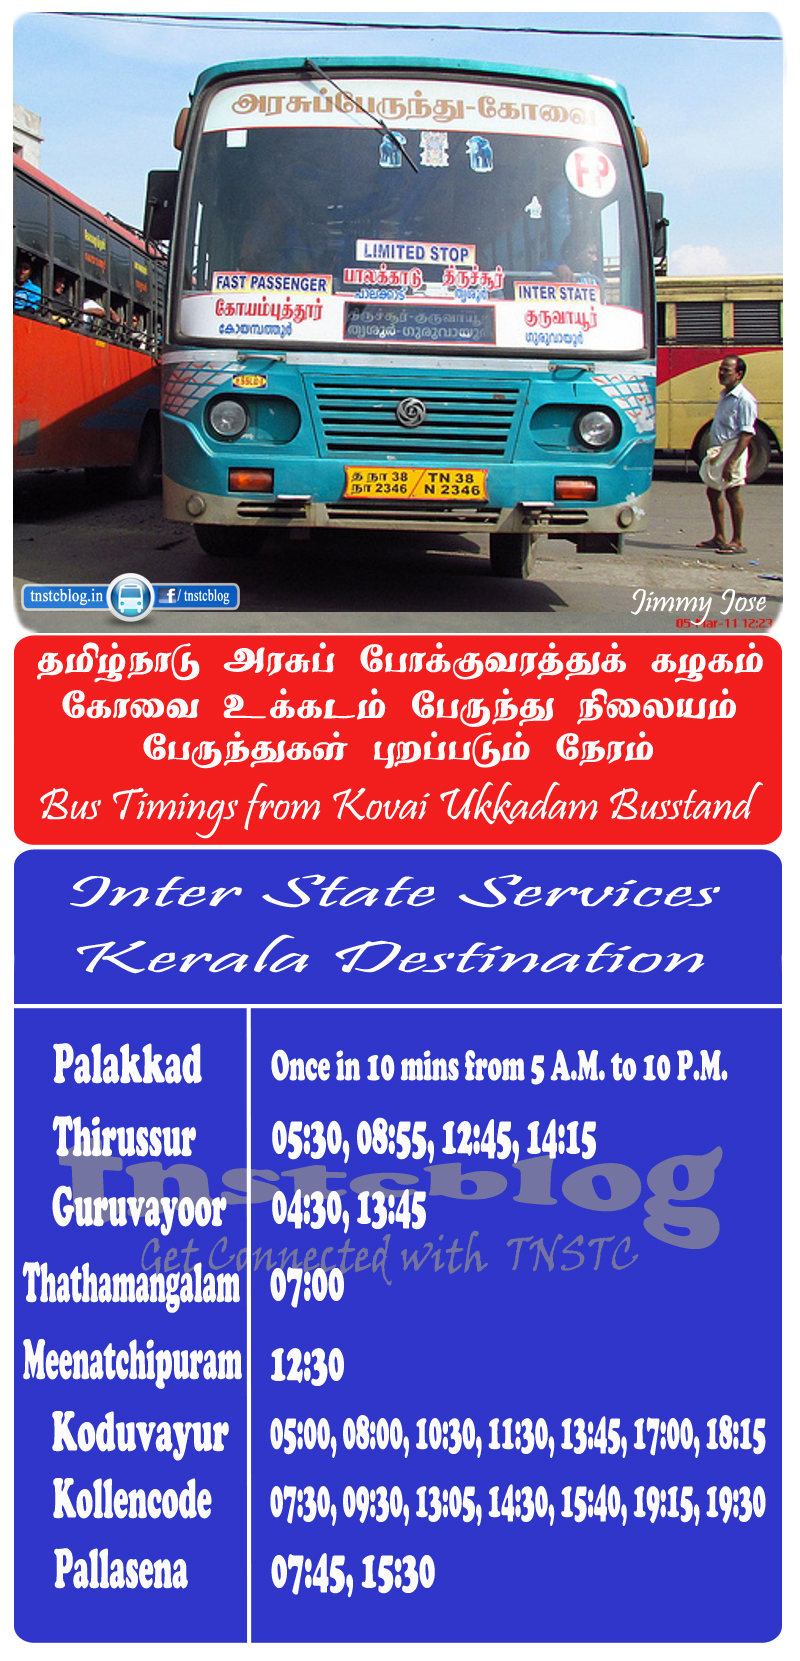 Kerala Interstate timings from Kovai Ukkadam Busstand